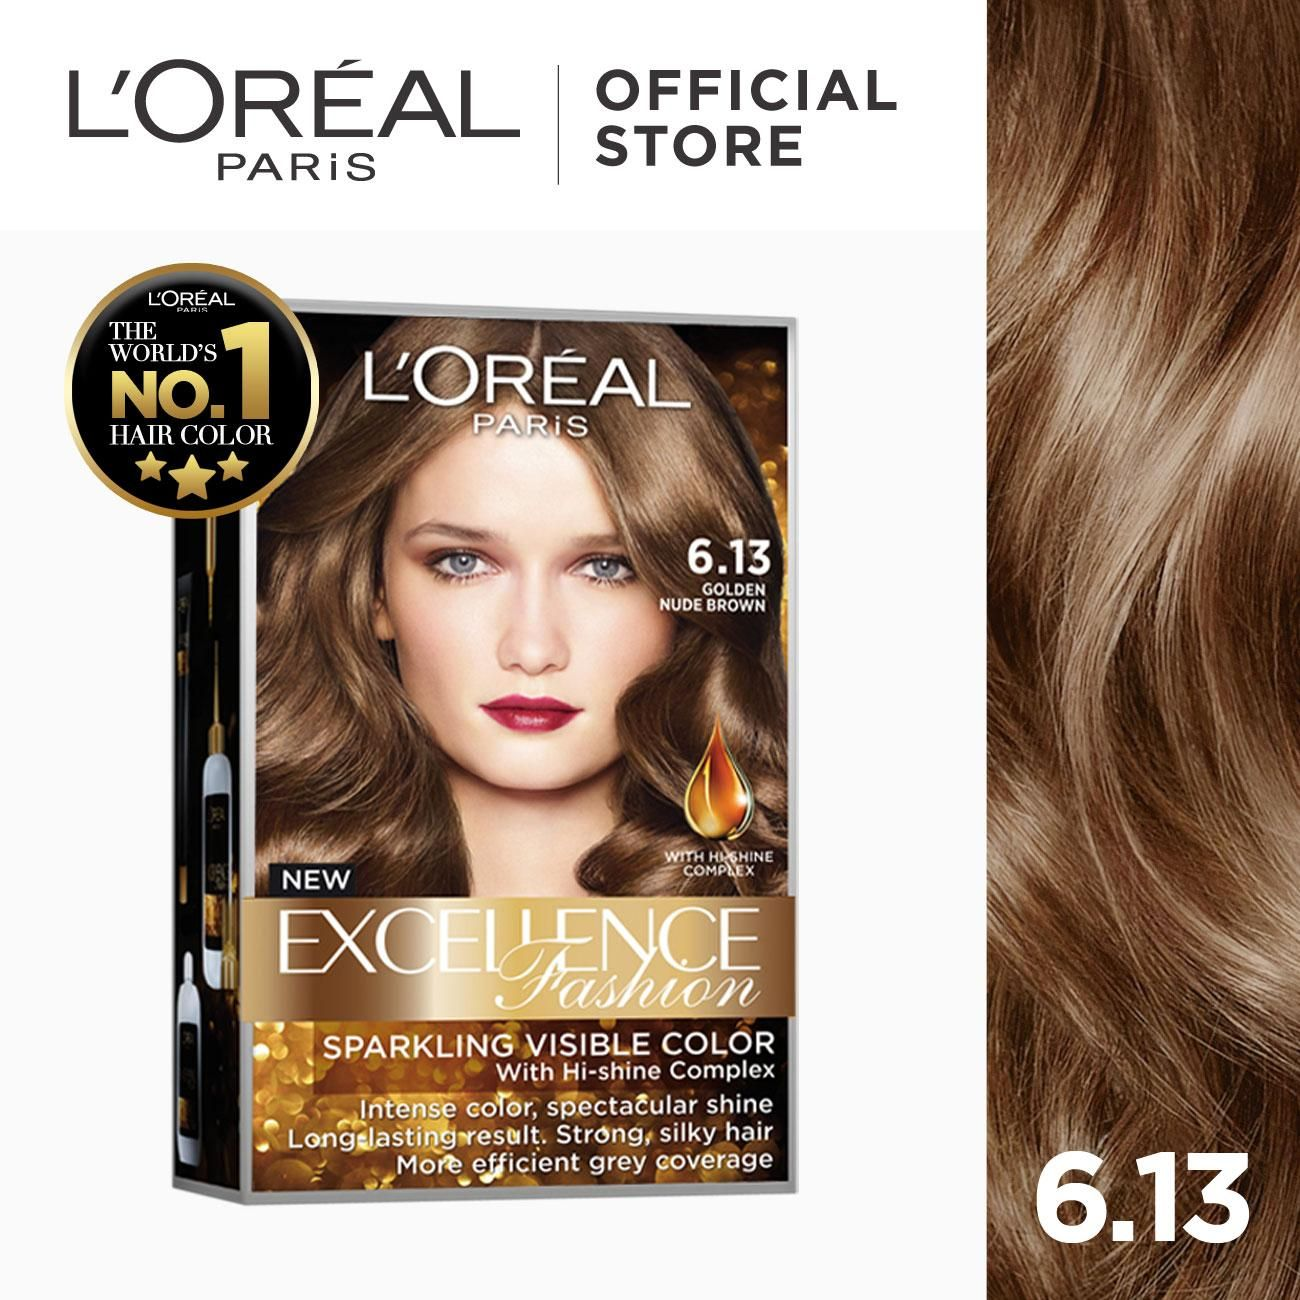 Excellence Fashion Parisian Gold World S No 1 By L Oreal Paris W Protective Serum Conditioner Lazada Ph In 2020 Loreal Paris Loreal Hair Color